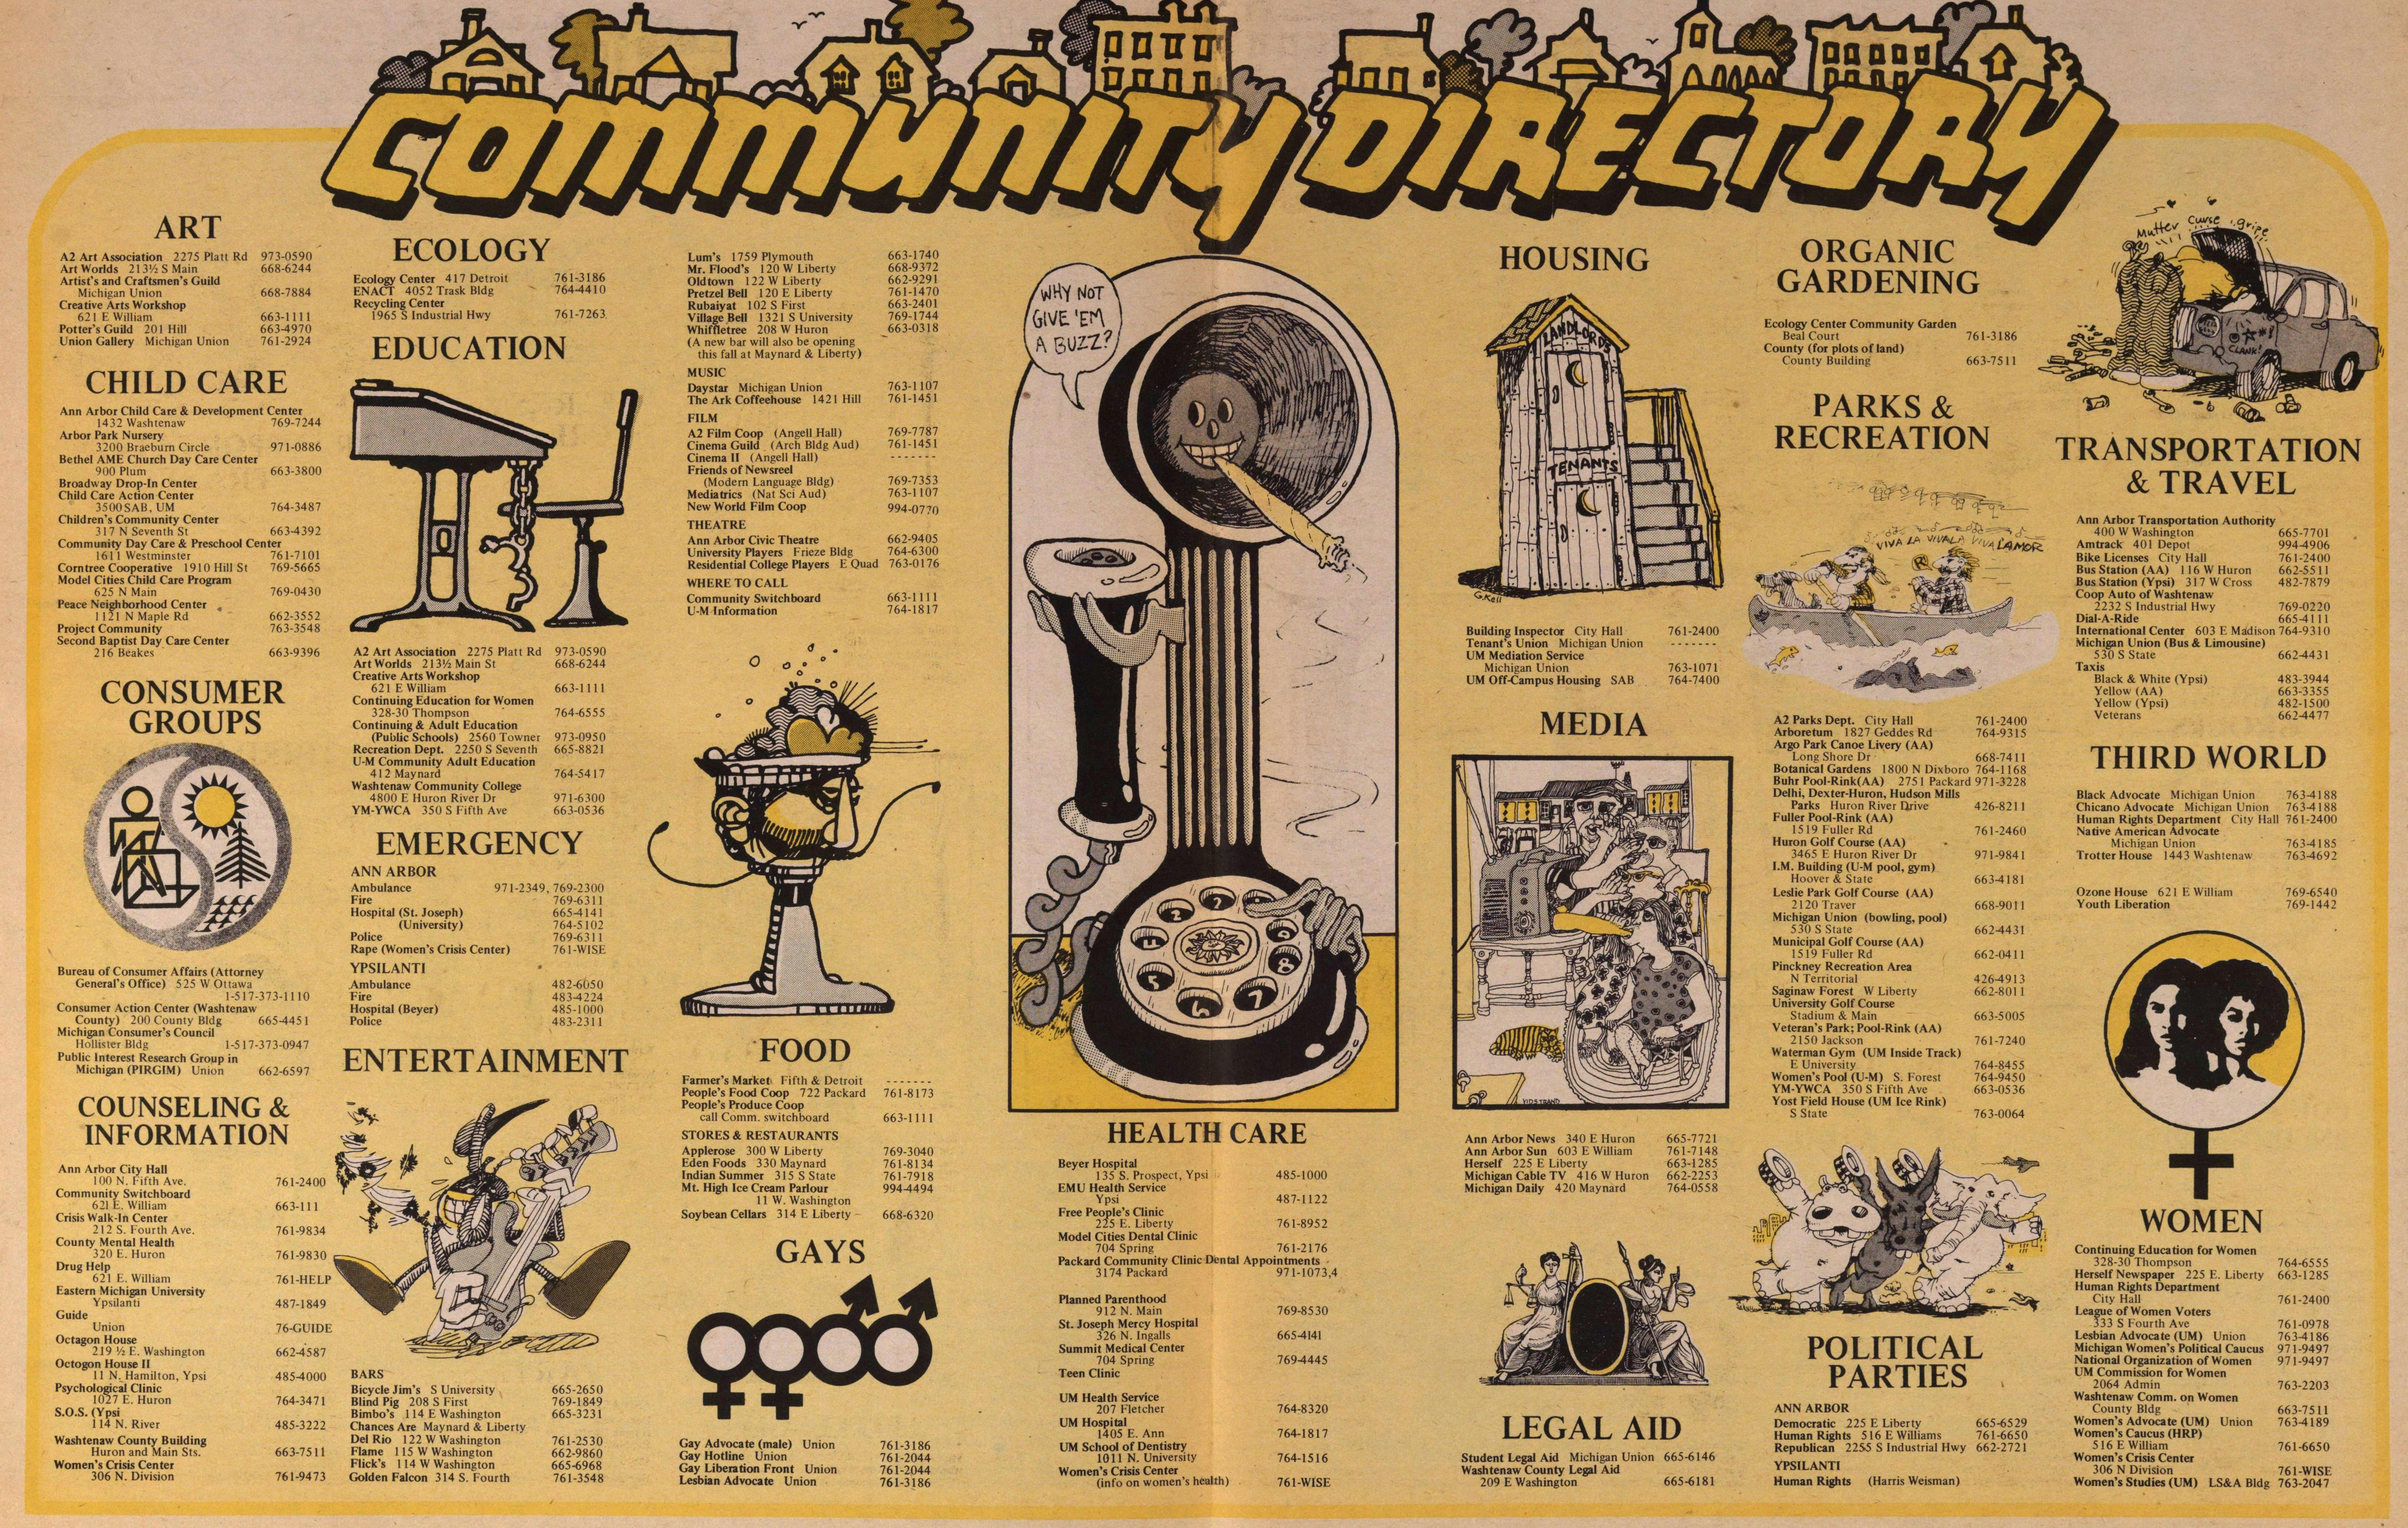 Community Directory image